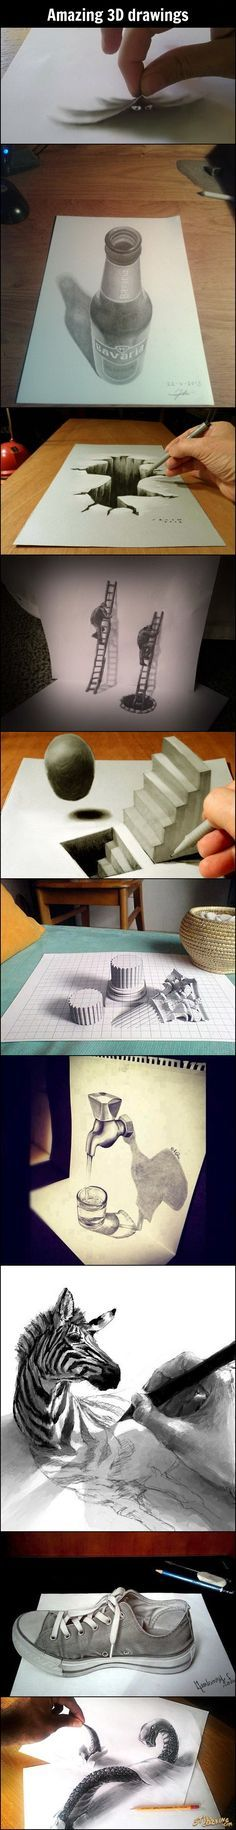 These amazing 3D Drawings really jumped out to me! I thought that they were great and how effective use of lines can give a drawing a life.